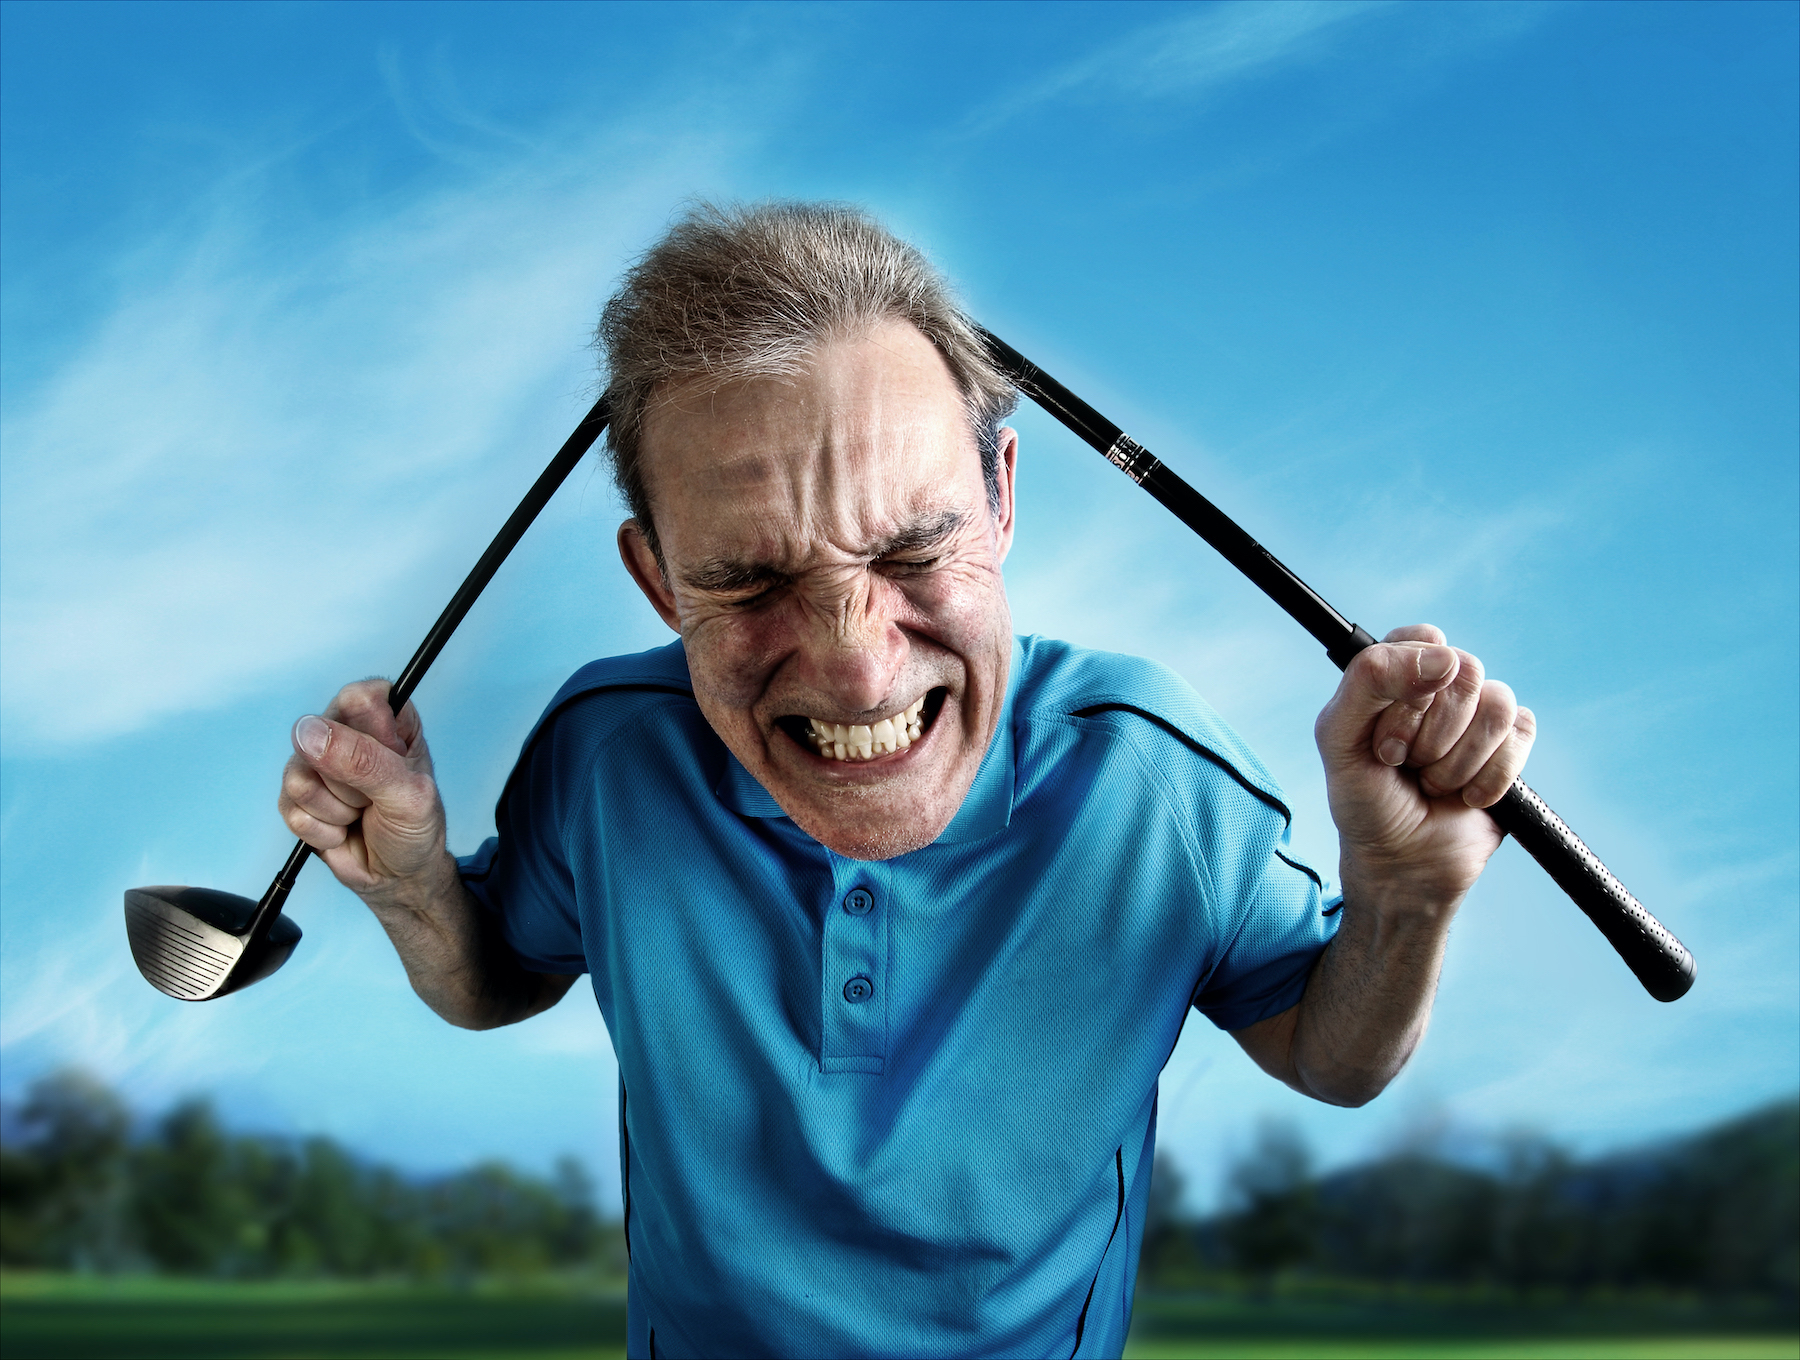 marketing in the golf industry - clubfitting article BN Branding